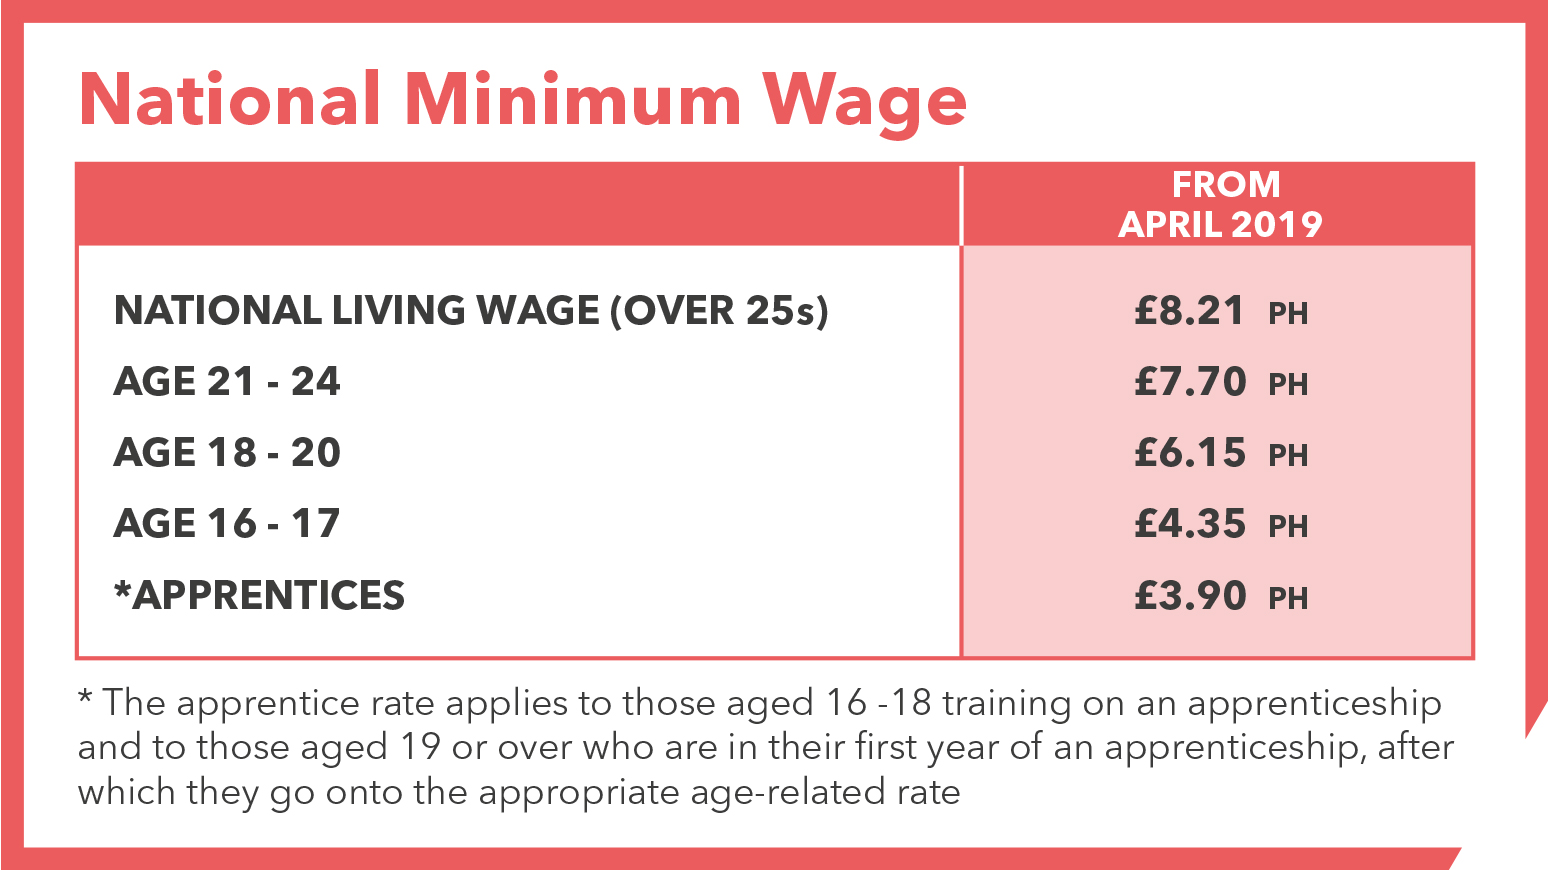 National Minimum Wage 2019